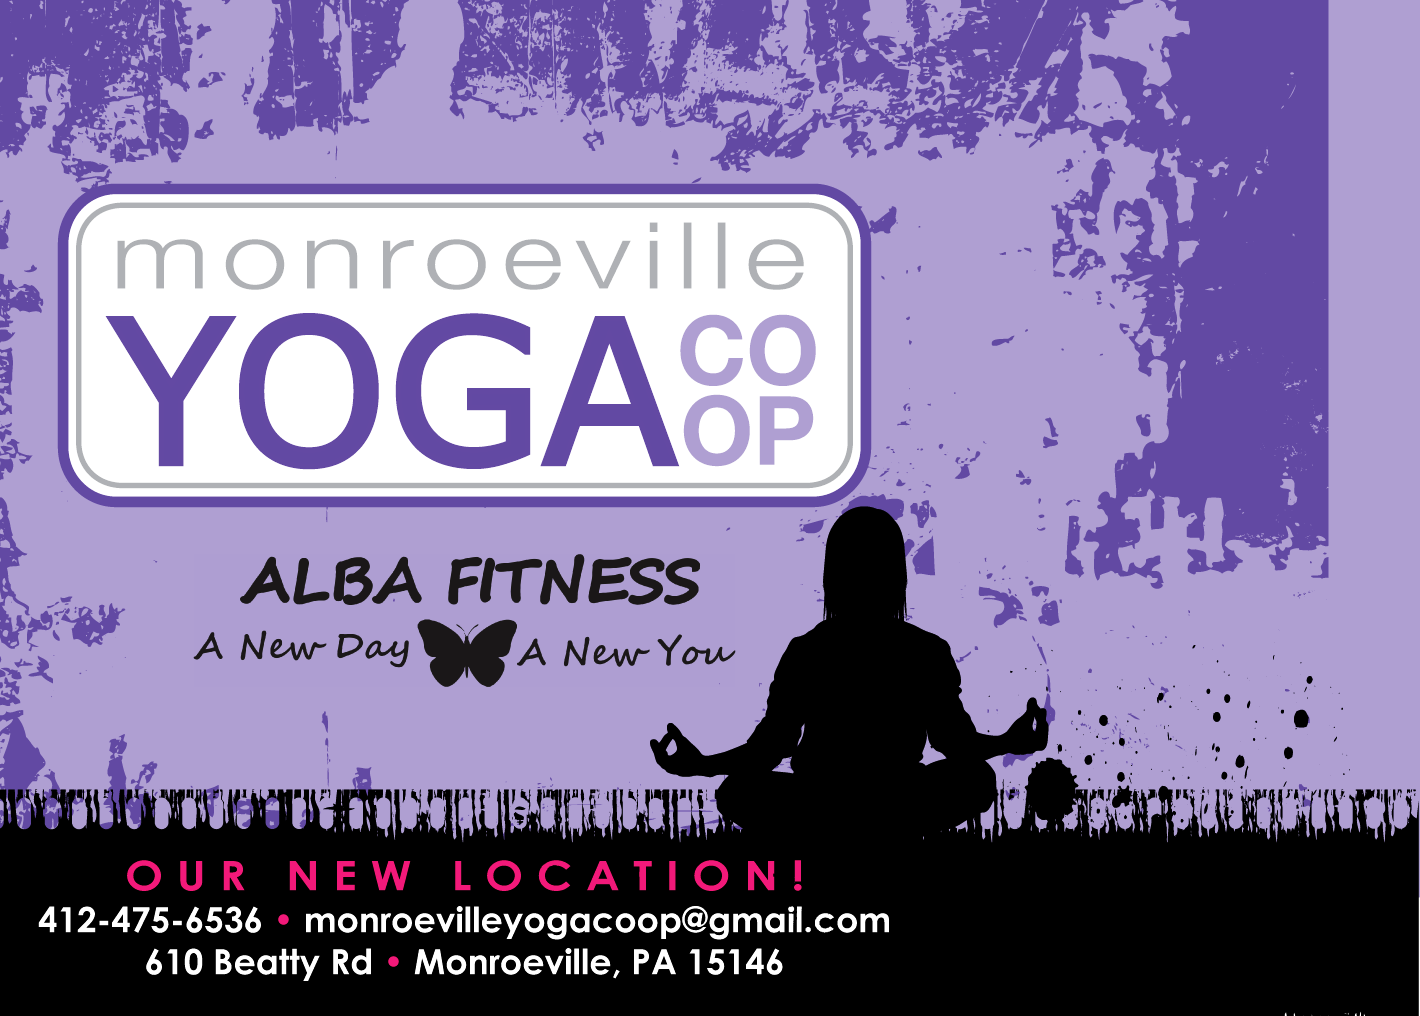 The Monroeville Yoga Co-Op